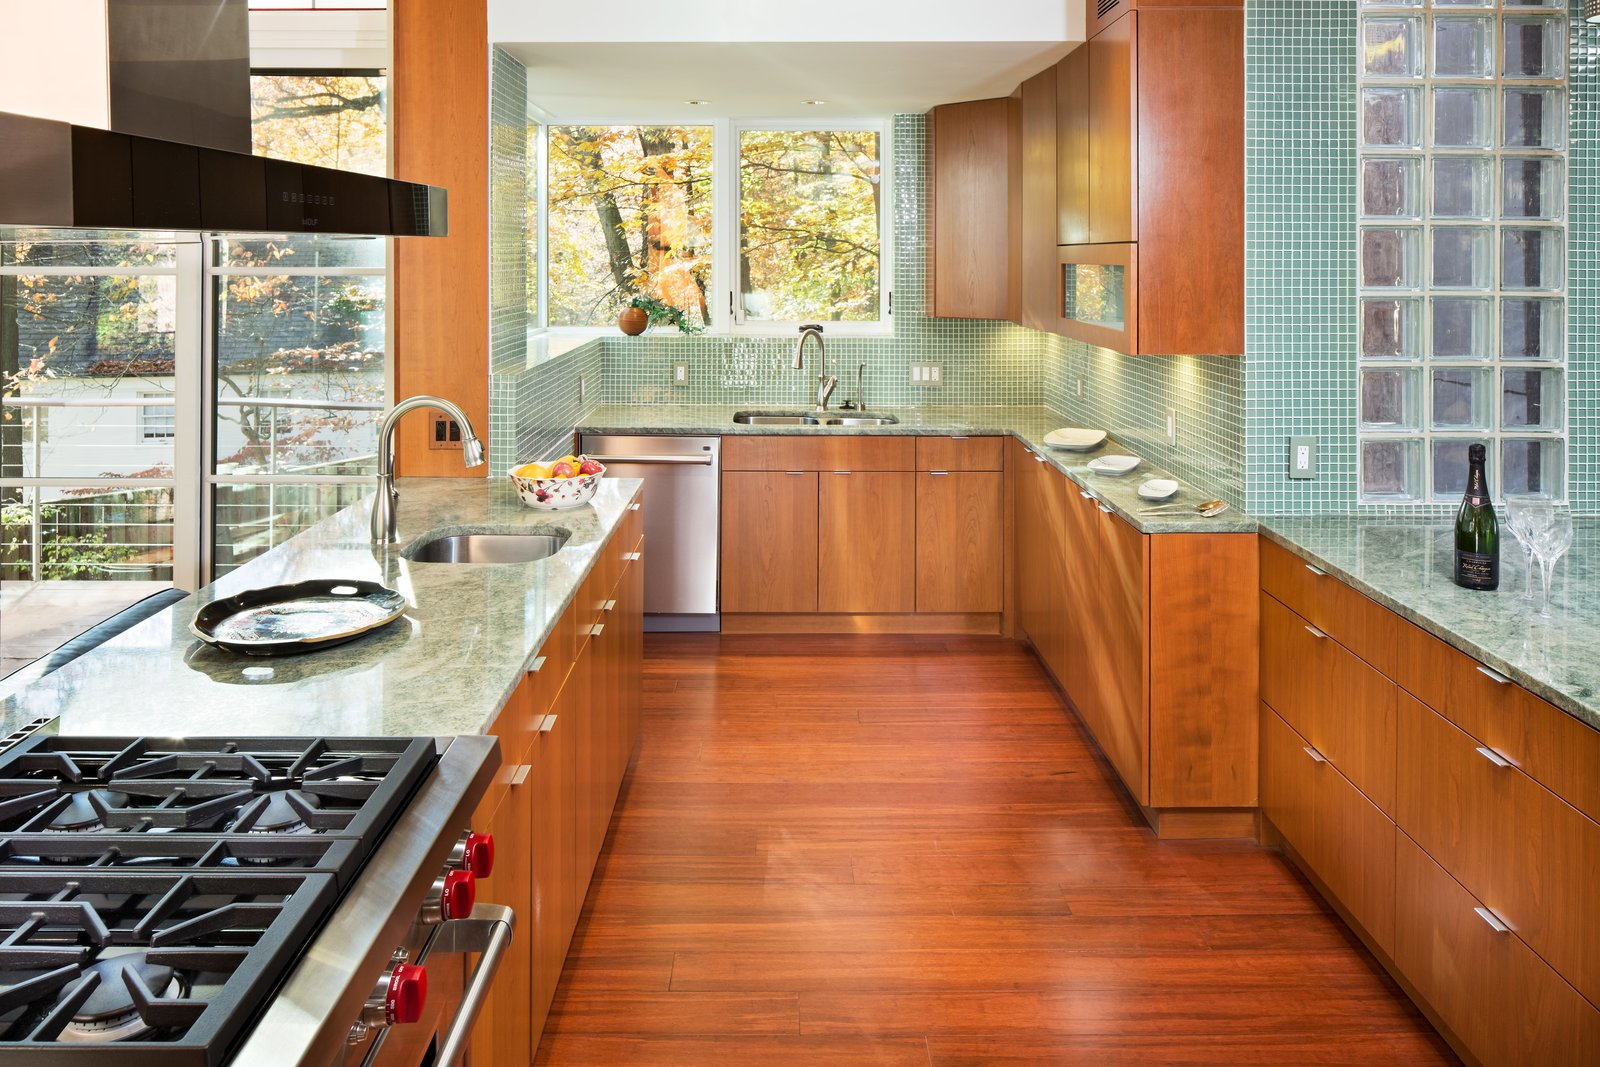 The kitchen features high-end appliances and cabinets elegantly paired with green marble countertops and tiling.  Photo 5 of 16 in An Airy, Award-Winning Maryland Gem Hits the Market